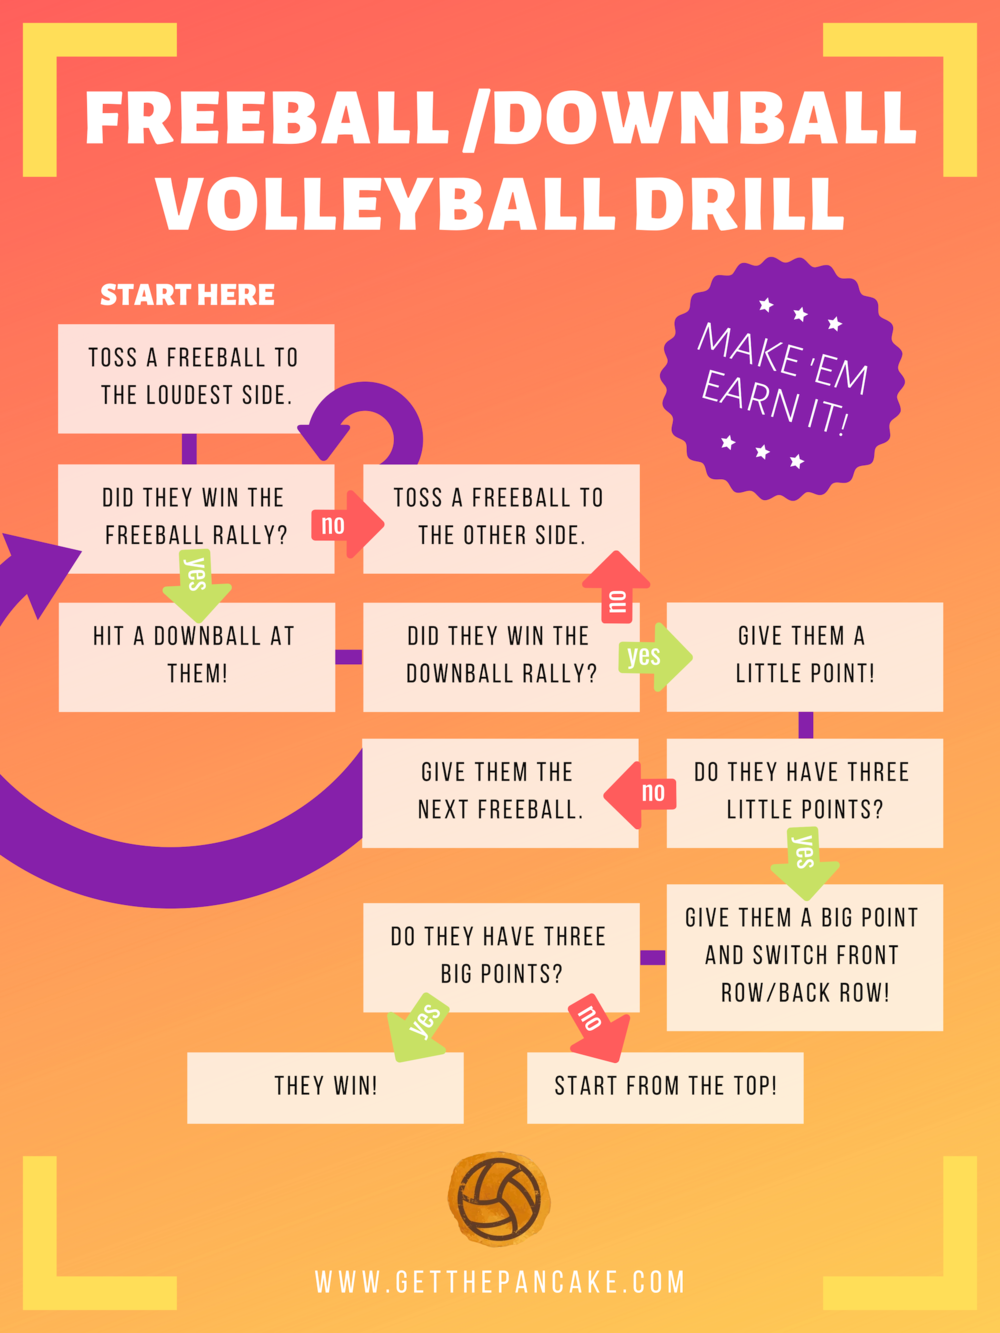 Freeball-Downball Volleyball Drill.png